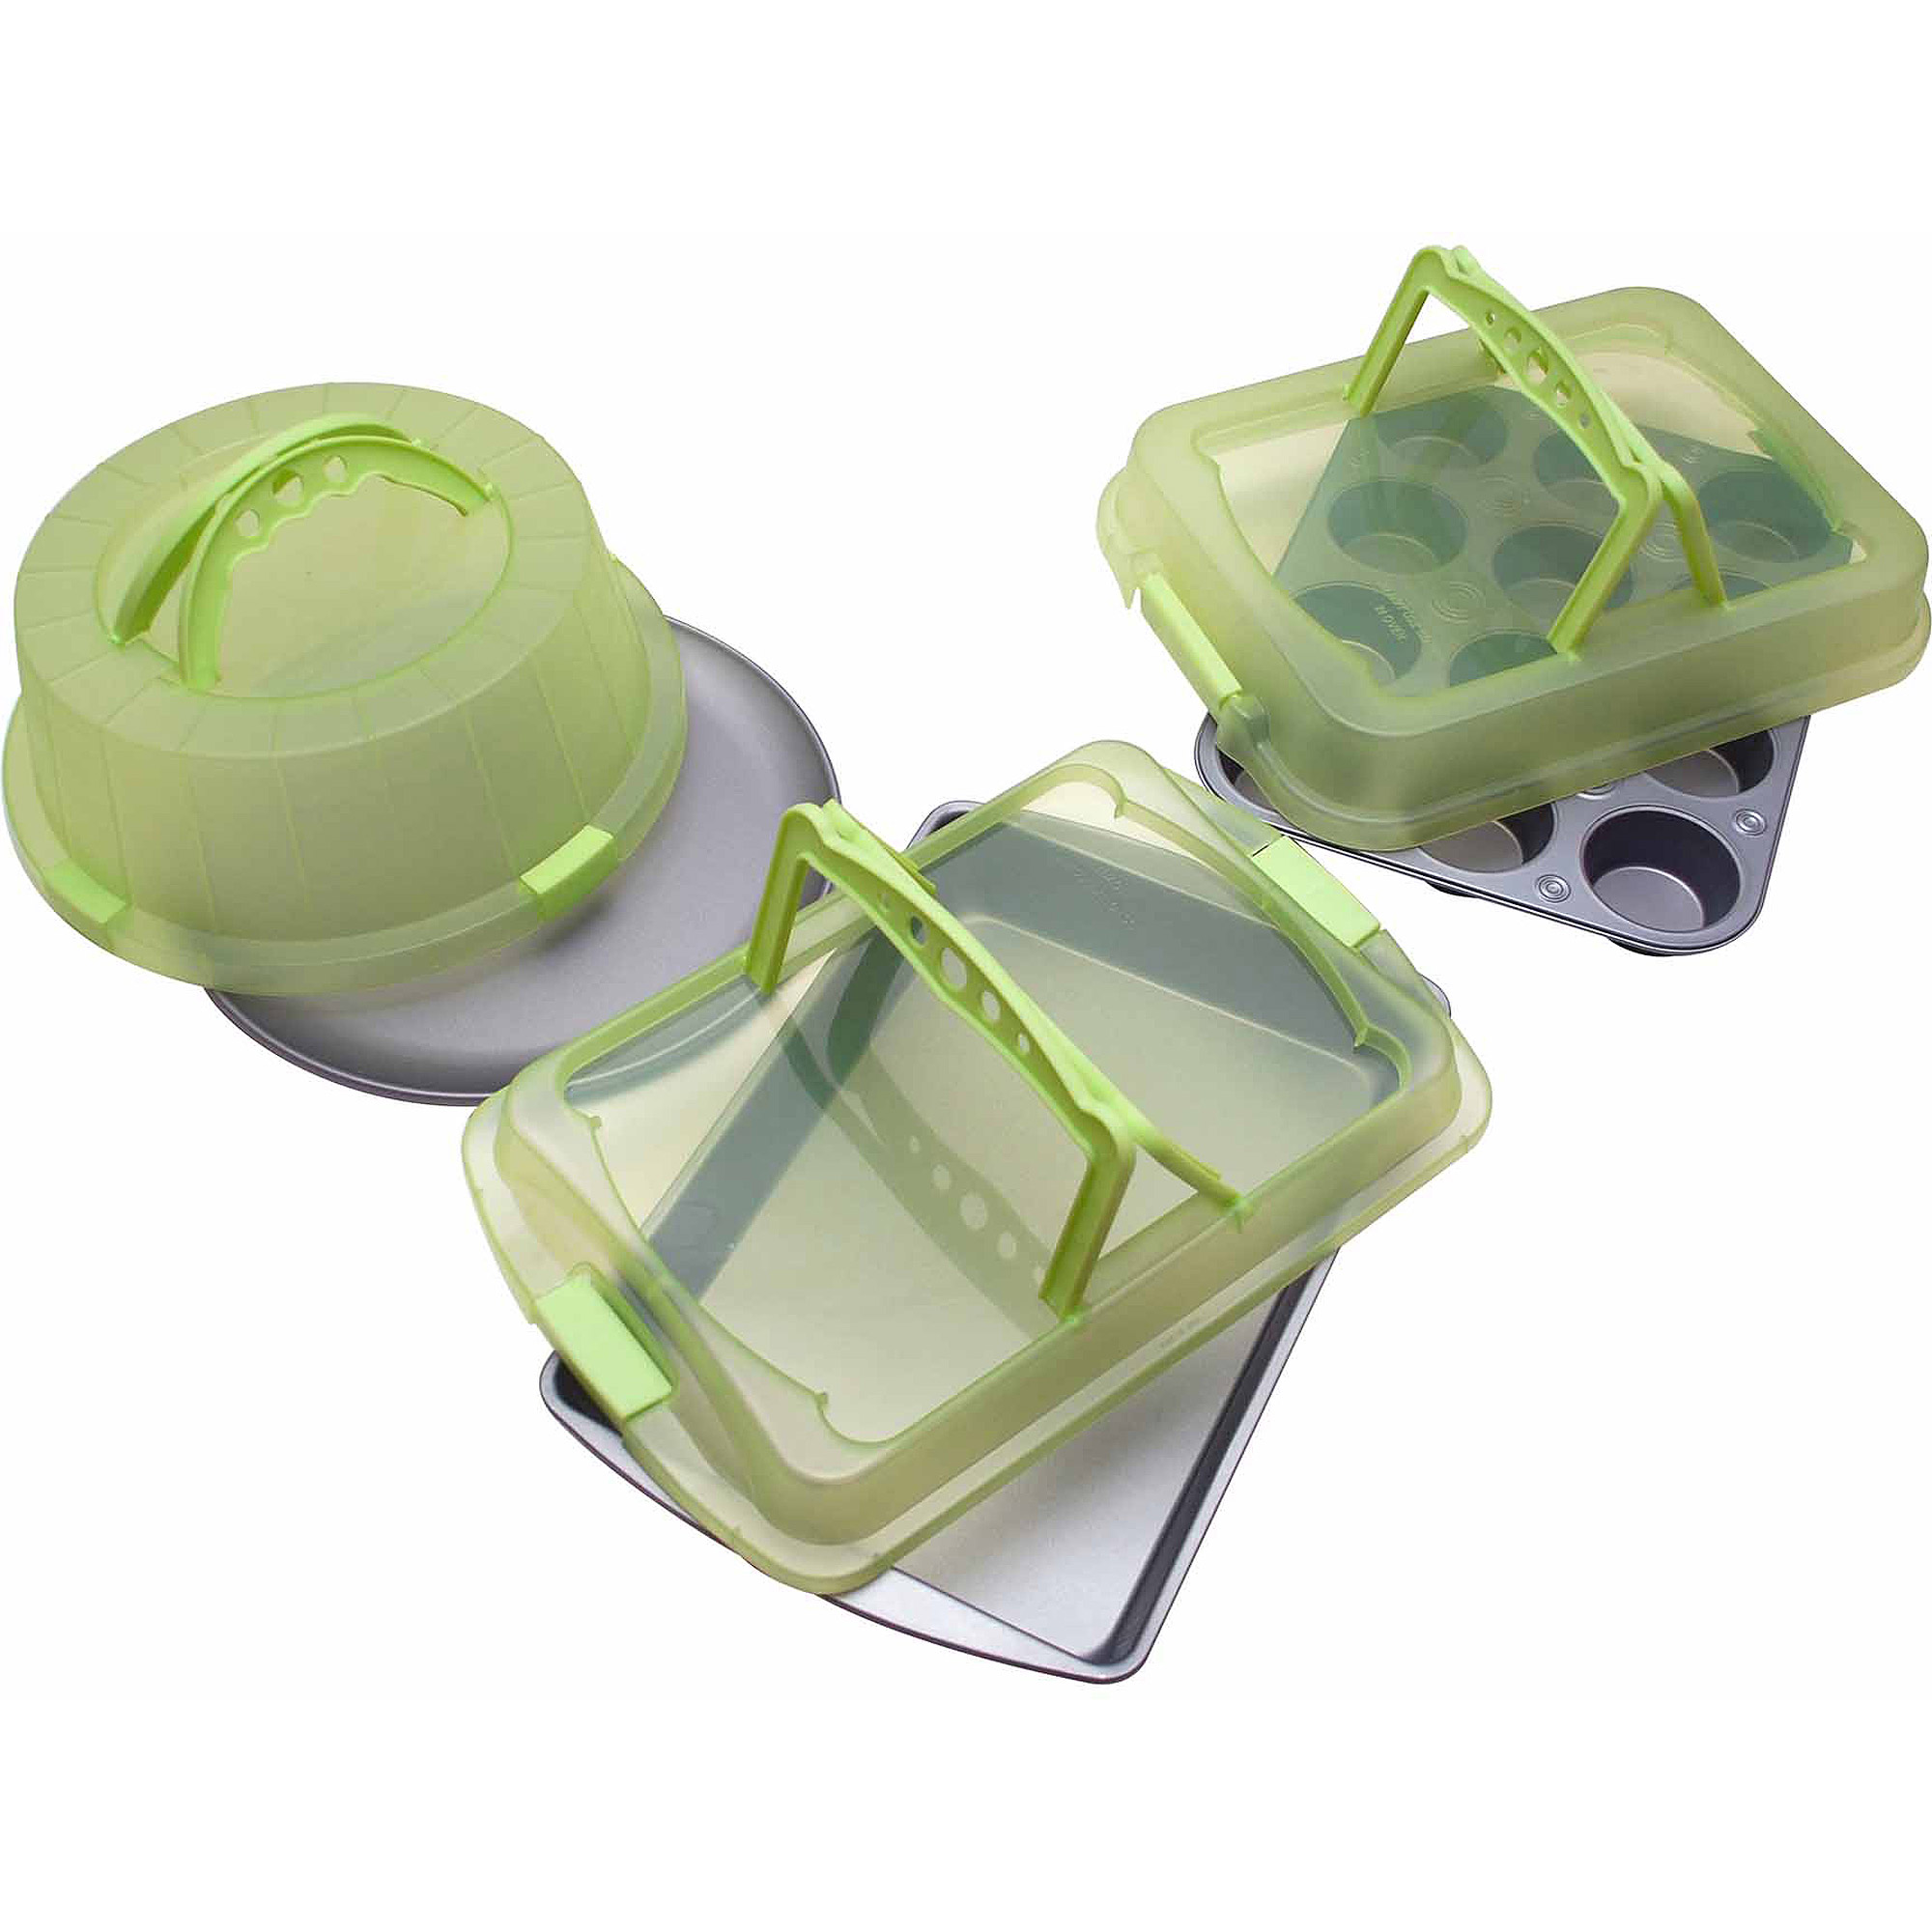 BakerEze Make and Take Bakeware Set